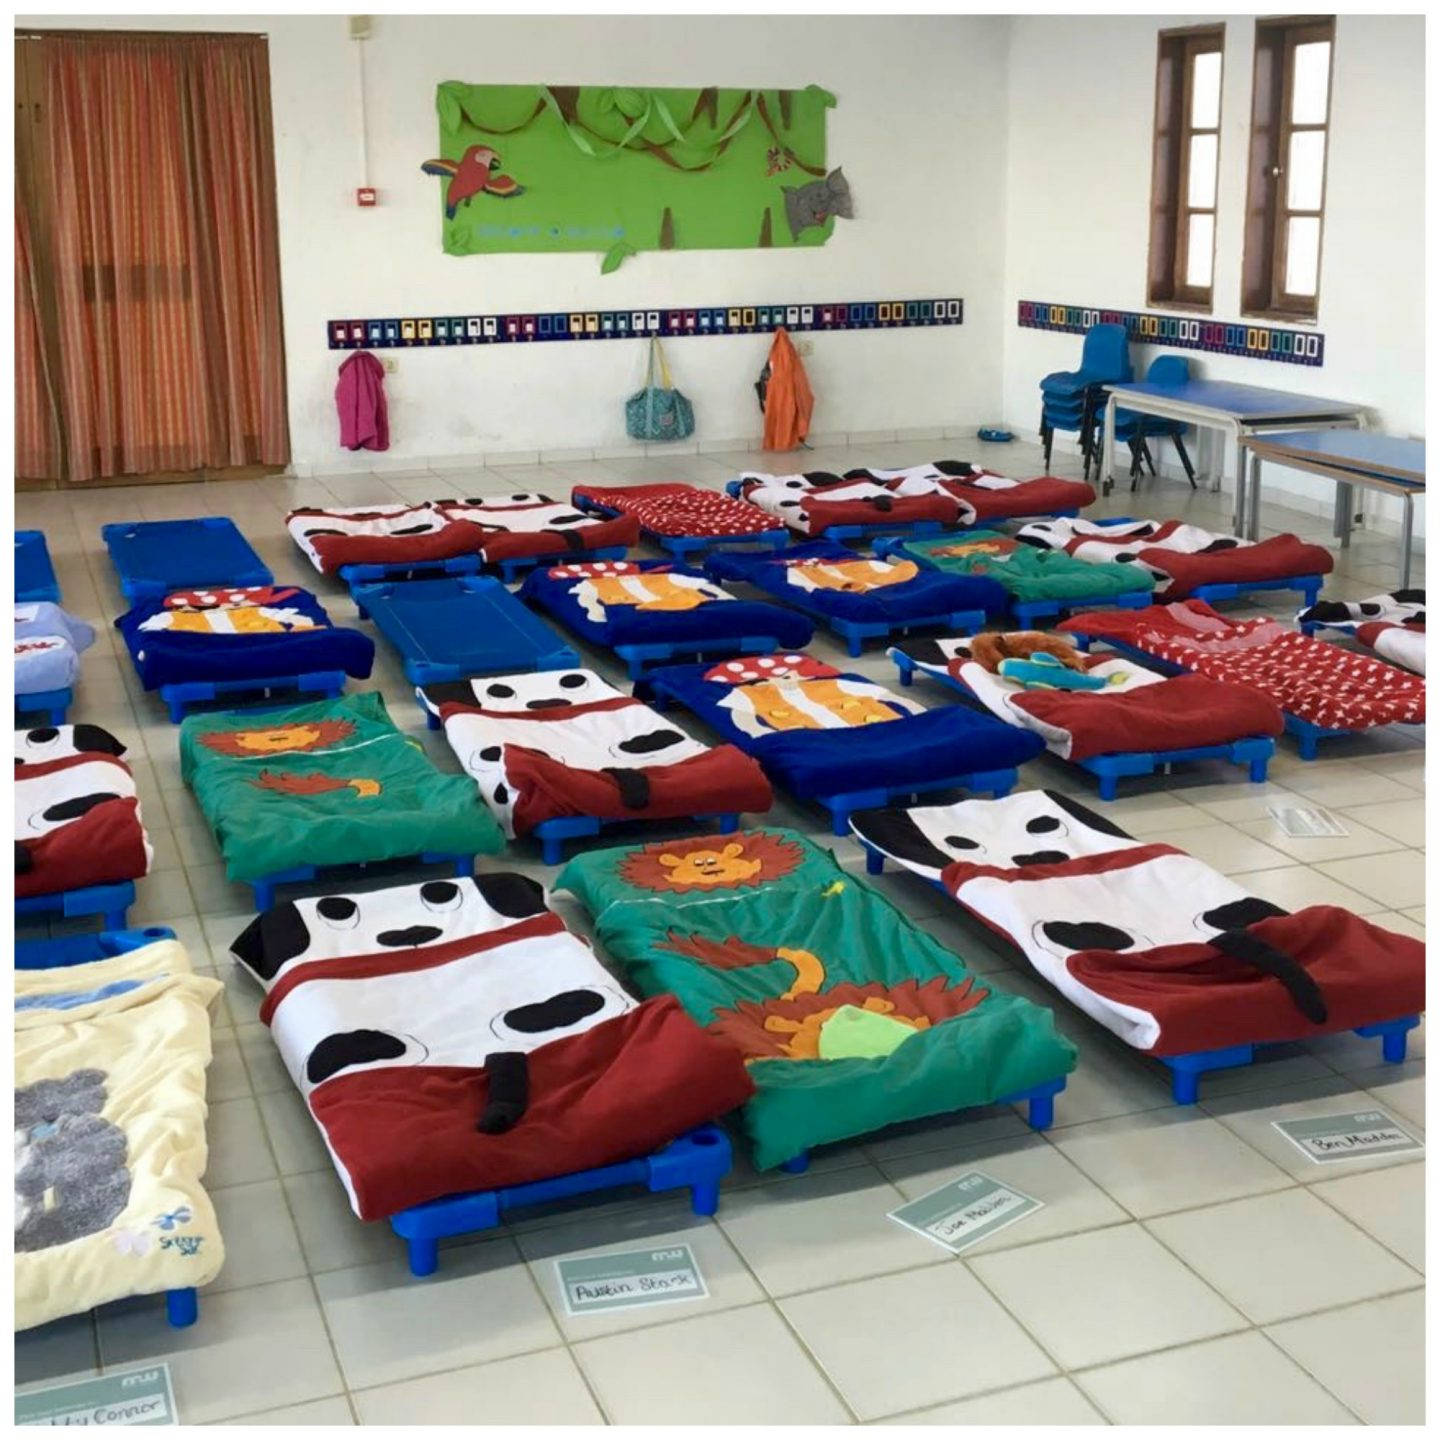 Childcare Mark Warner Lakitira Beach Resort - camp beds for evening listening service